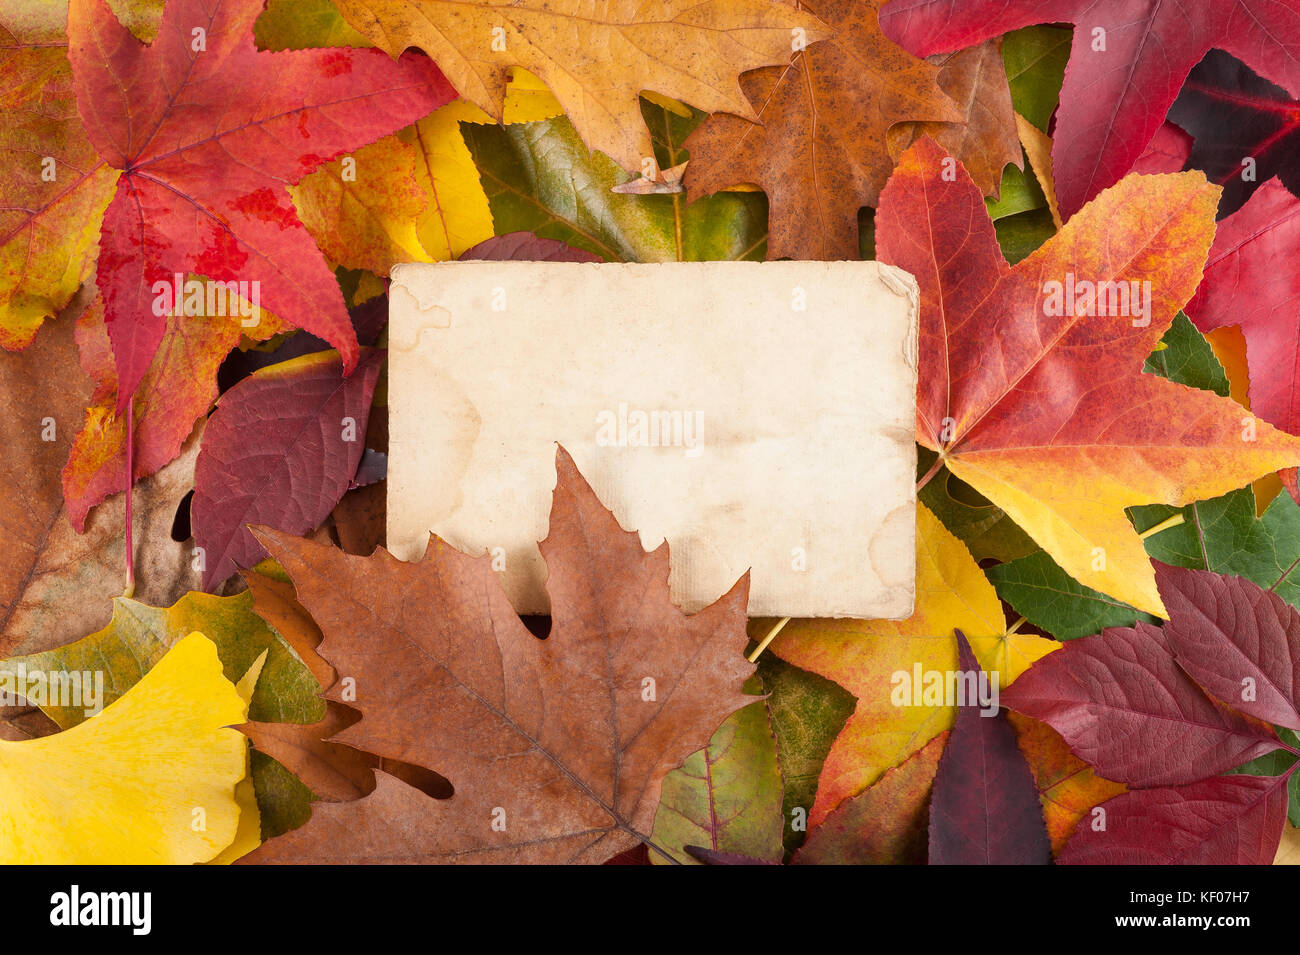 paper sheet  on dry  leaves background - Stock Image